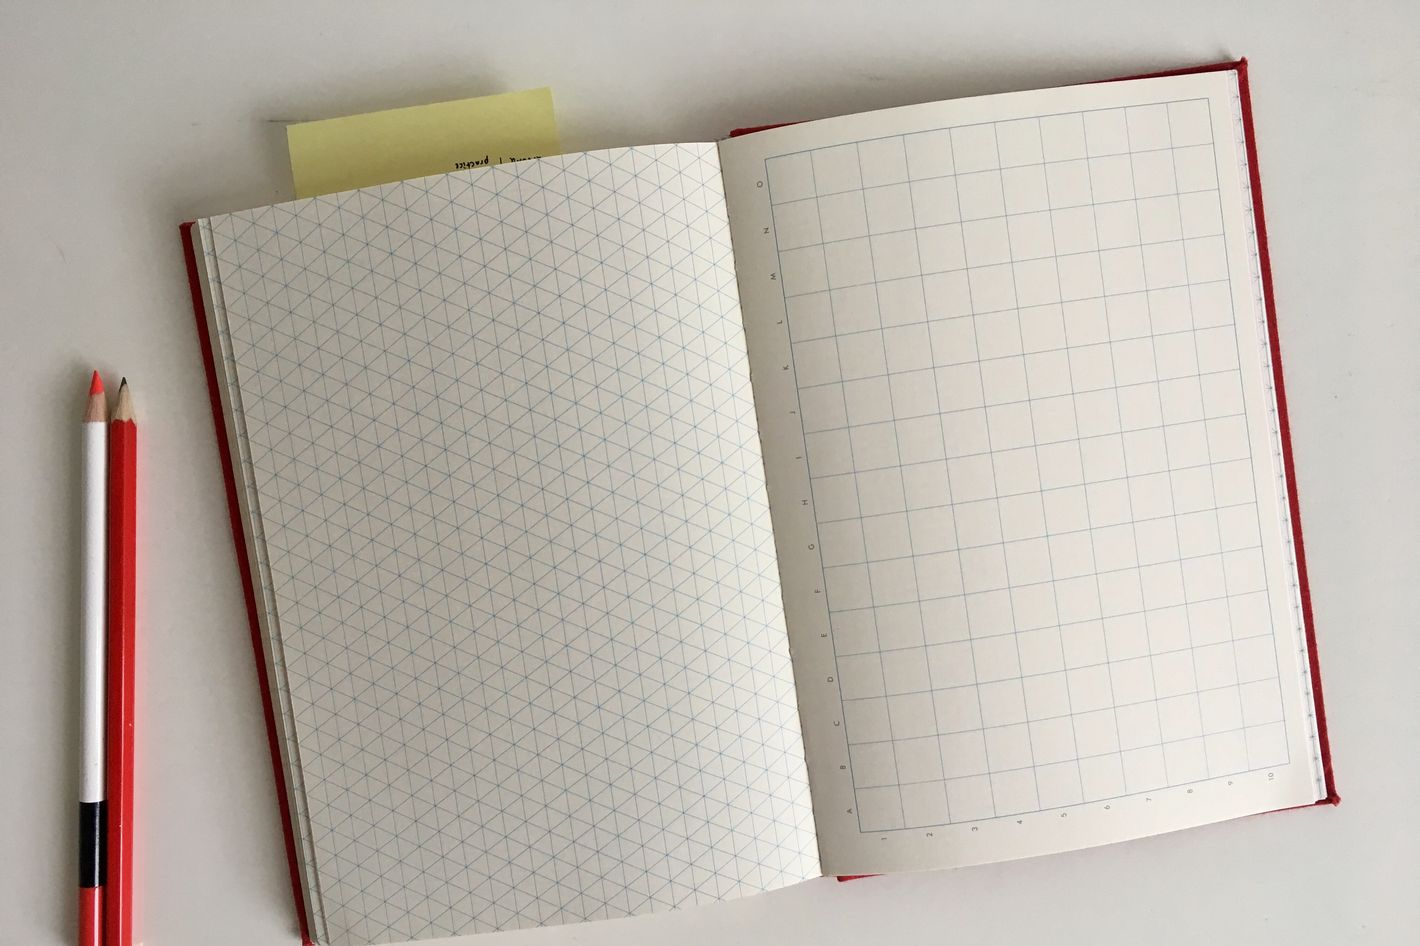 Princeton Architectural Press Grids & Guides Notebook